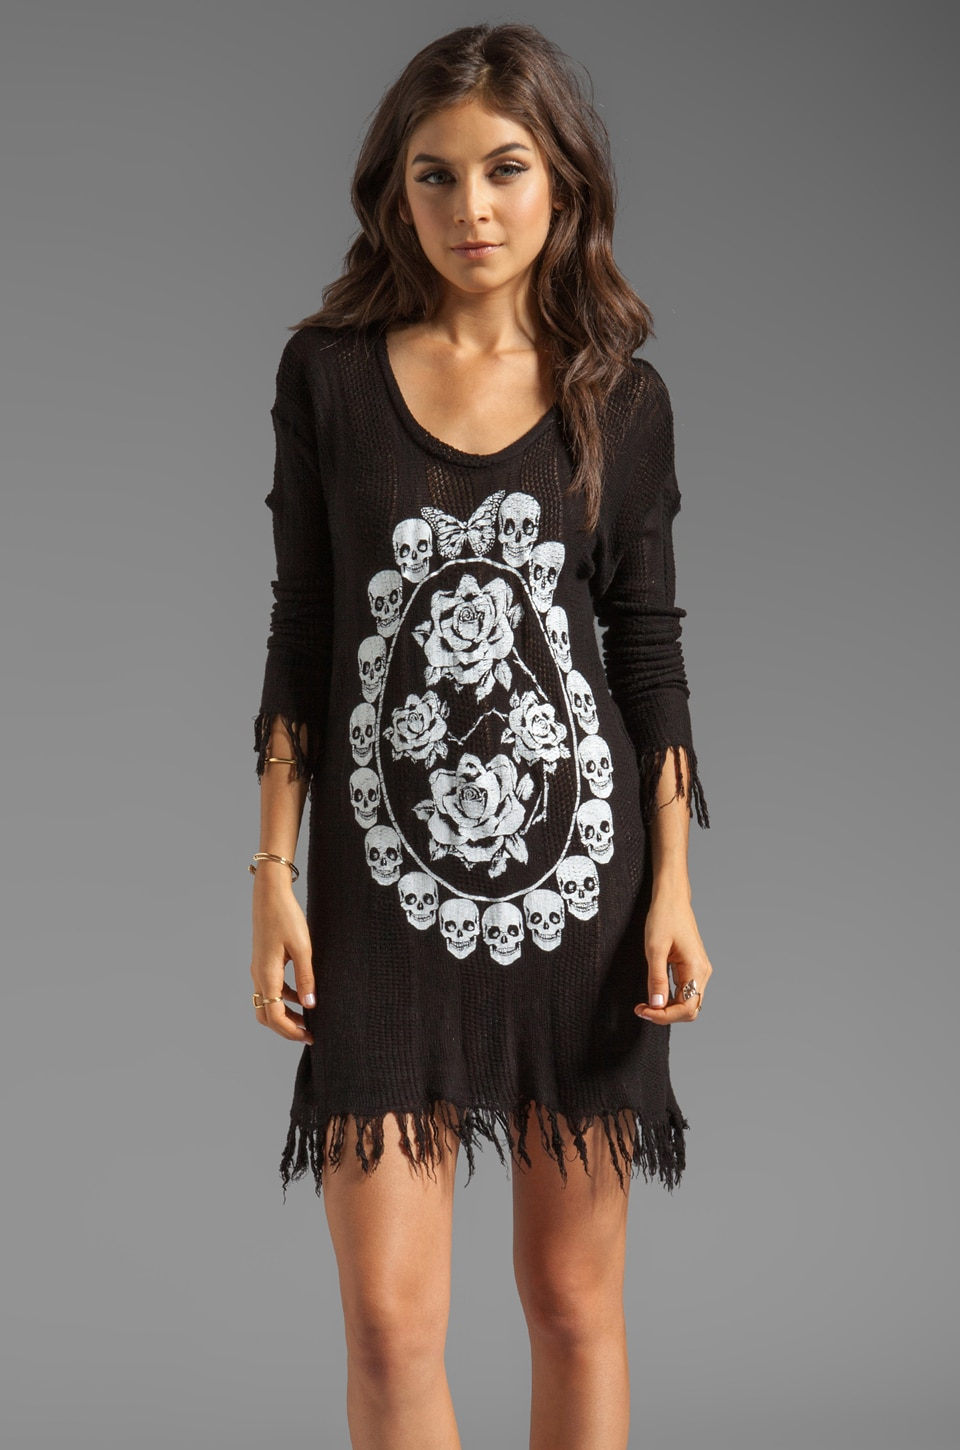 Lauren Moshi Gretta Skull Pendant Sweater Dress in Black